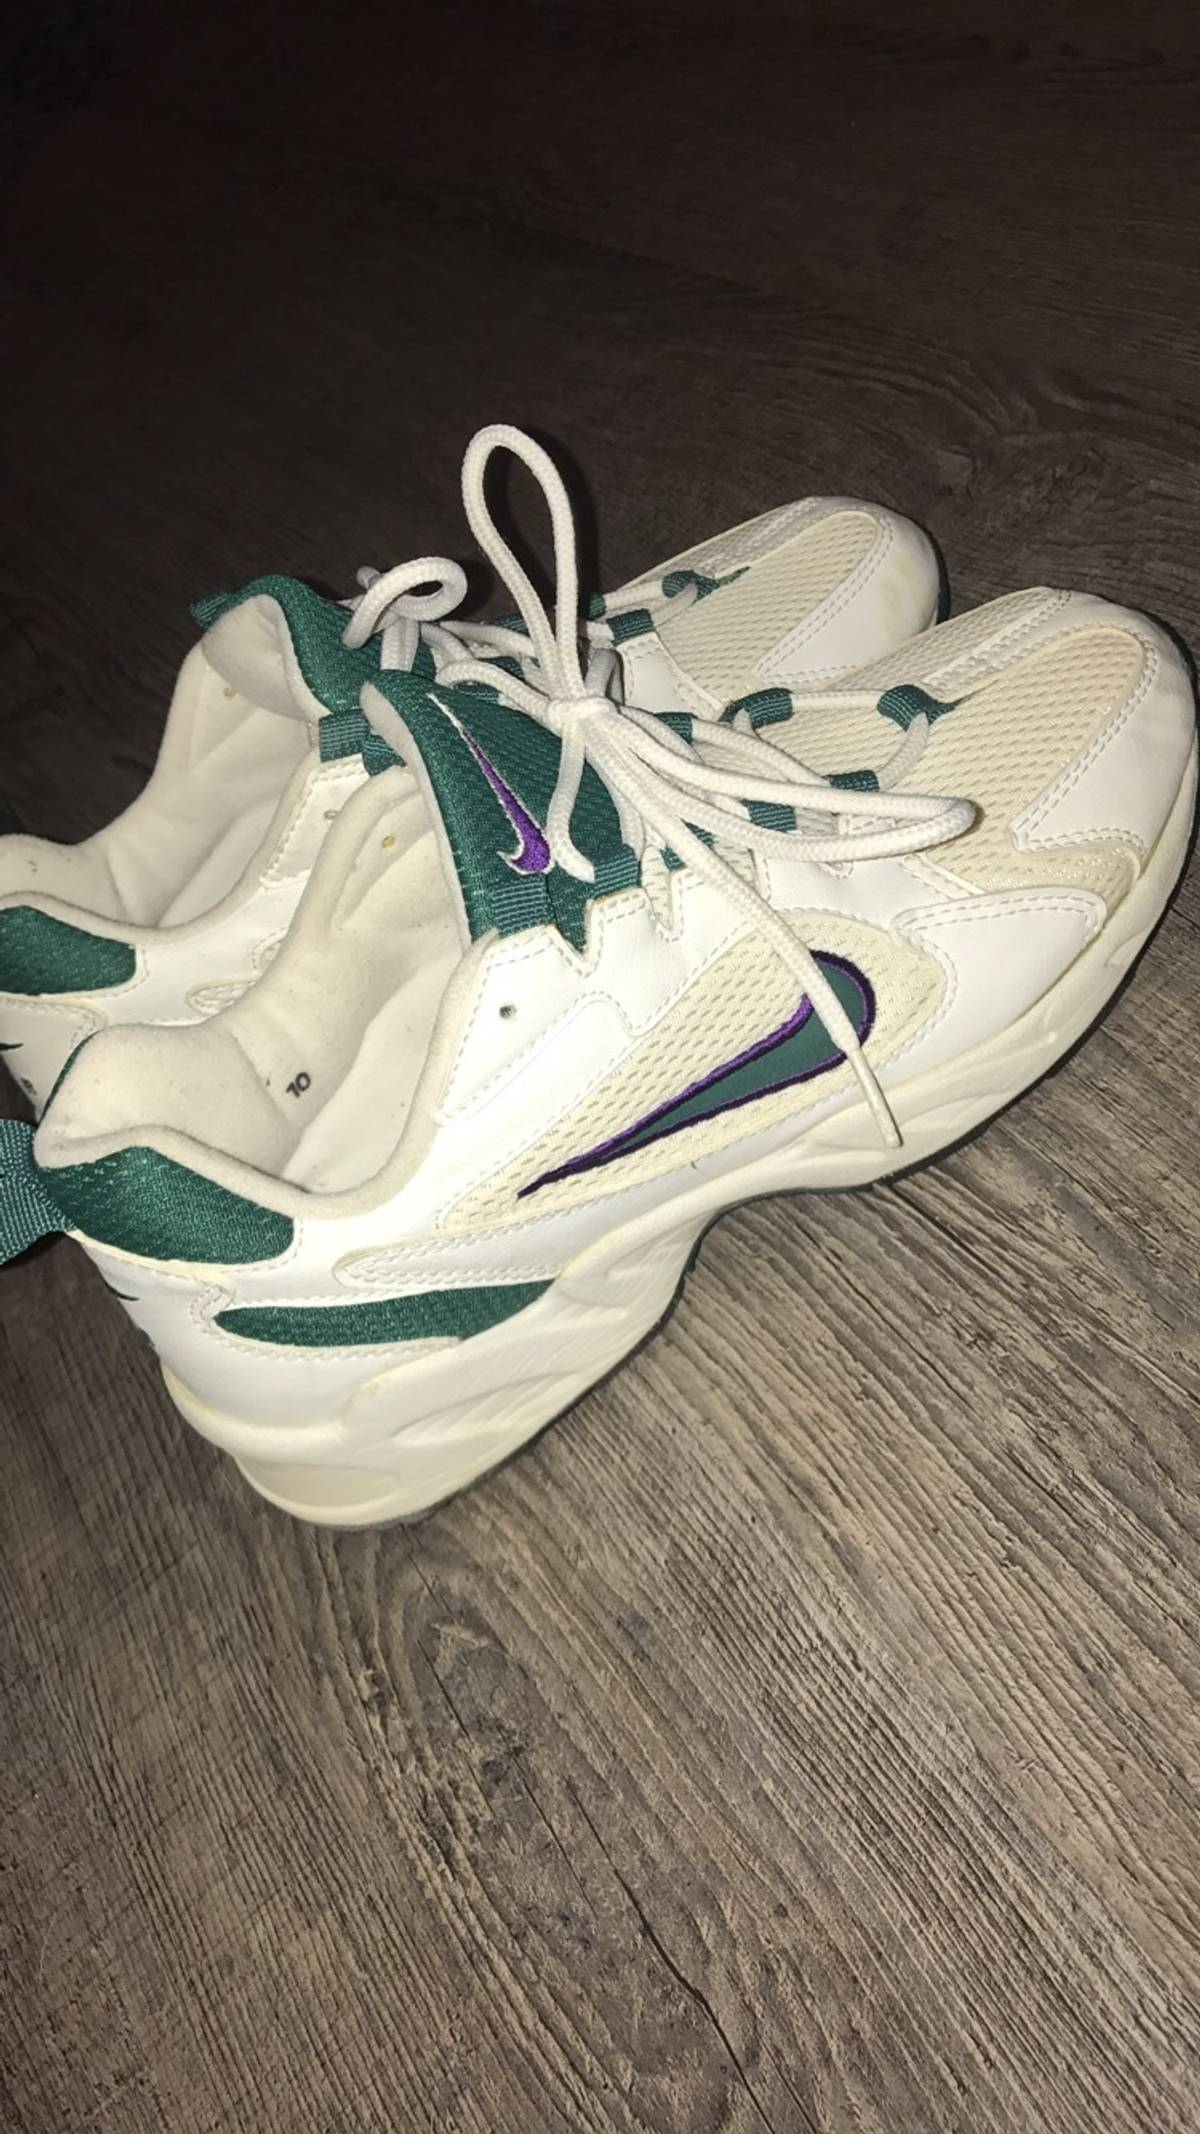 new style a78bb cf7f6 Nike Nike Air Contrail 1996 Size 9 - Low-Top Sneakers for Sa